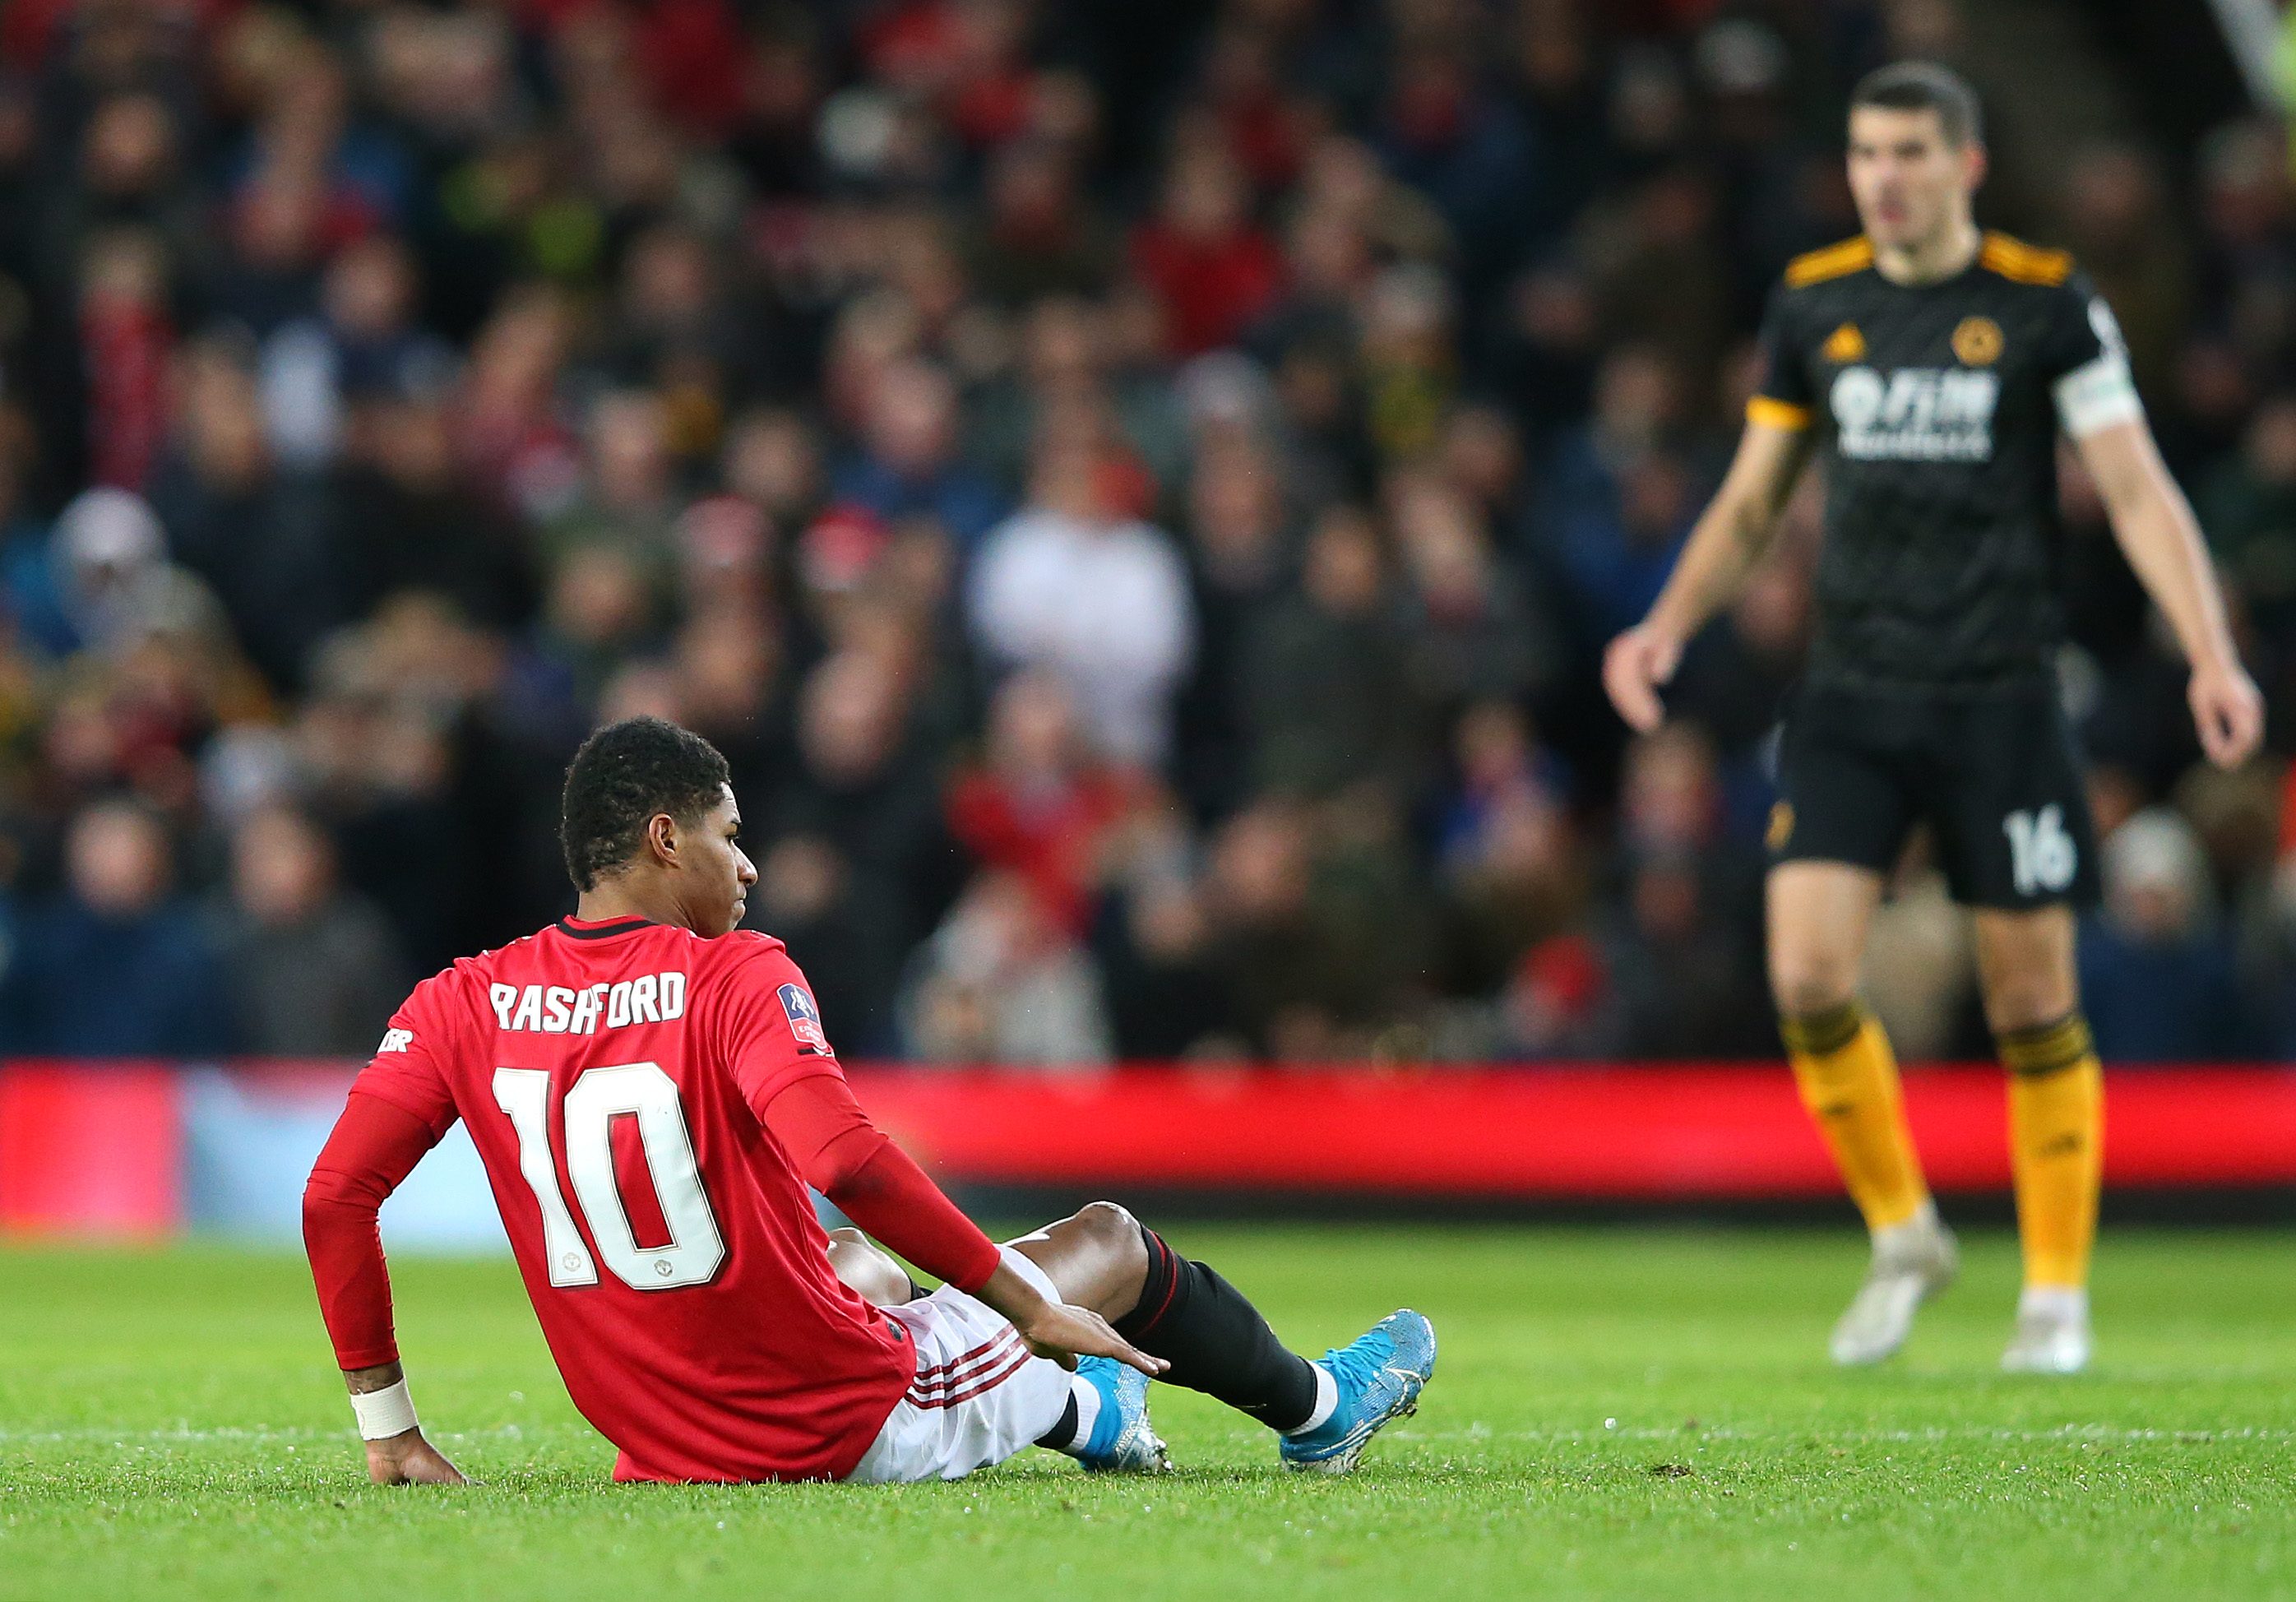 Marcus Rashford will be unavailable for the start of the season. (Photo by Alex Livesey/Getty Images)